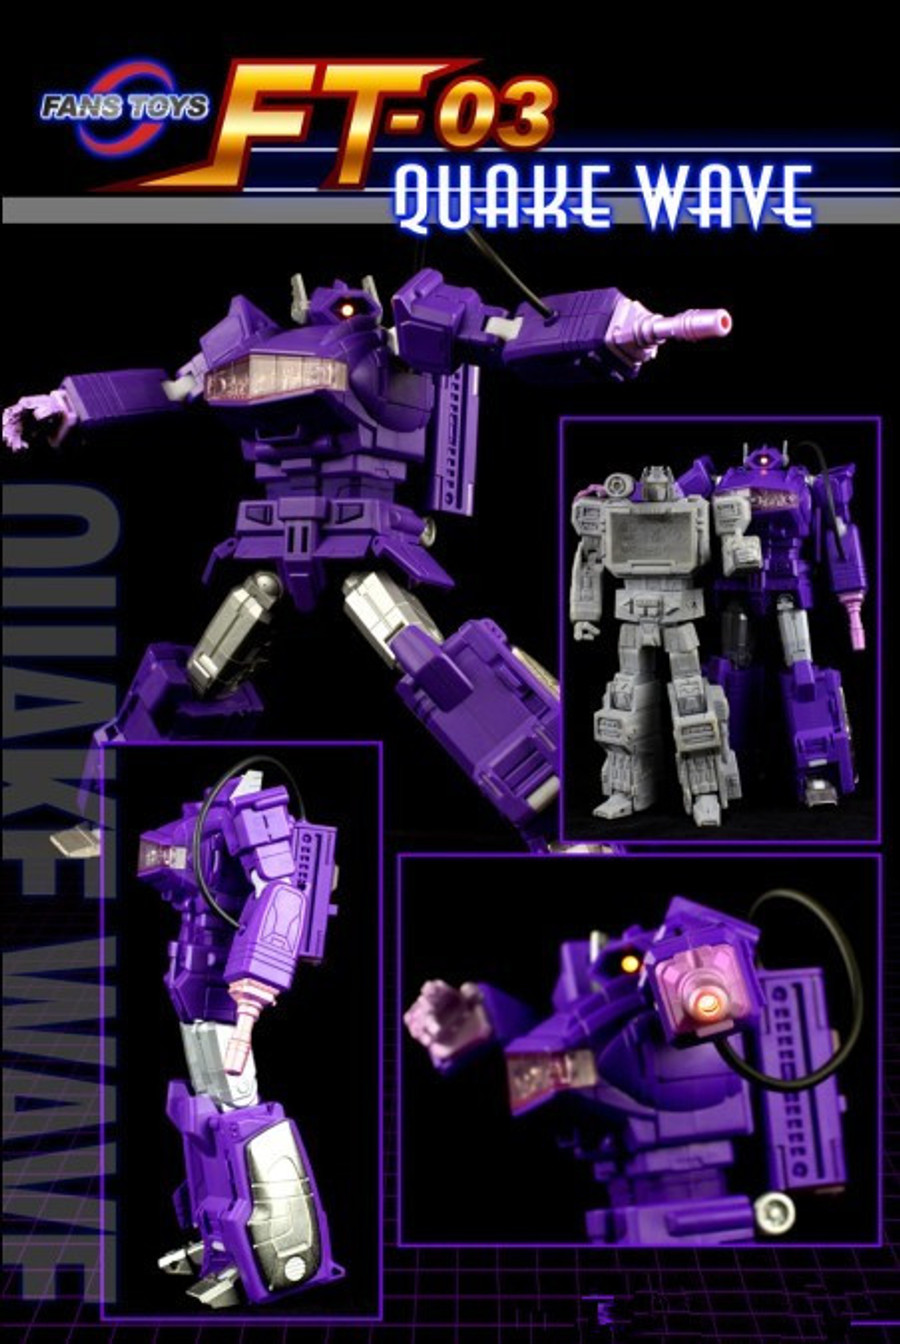 Fans Toys FT-03 Quakewave